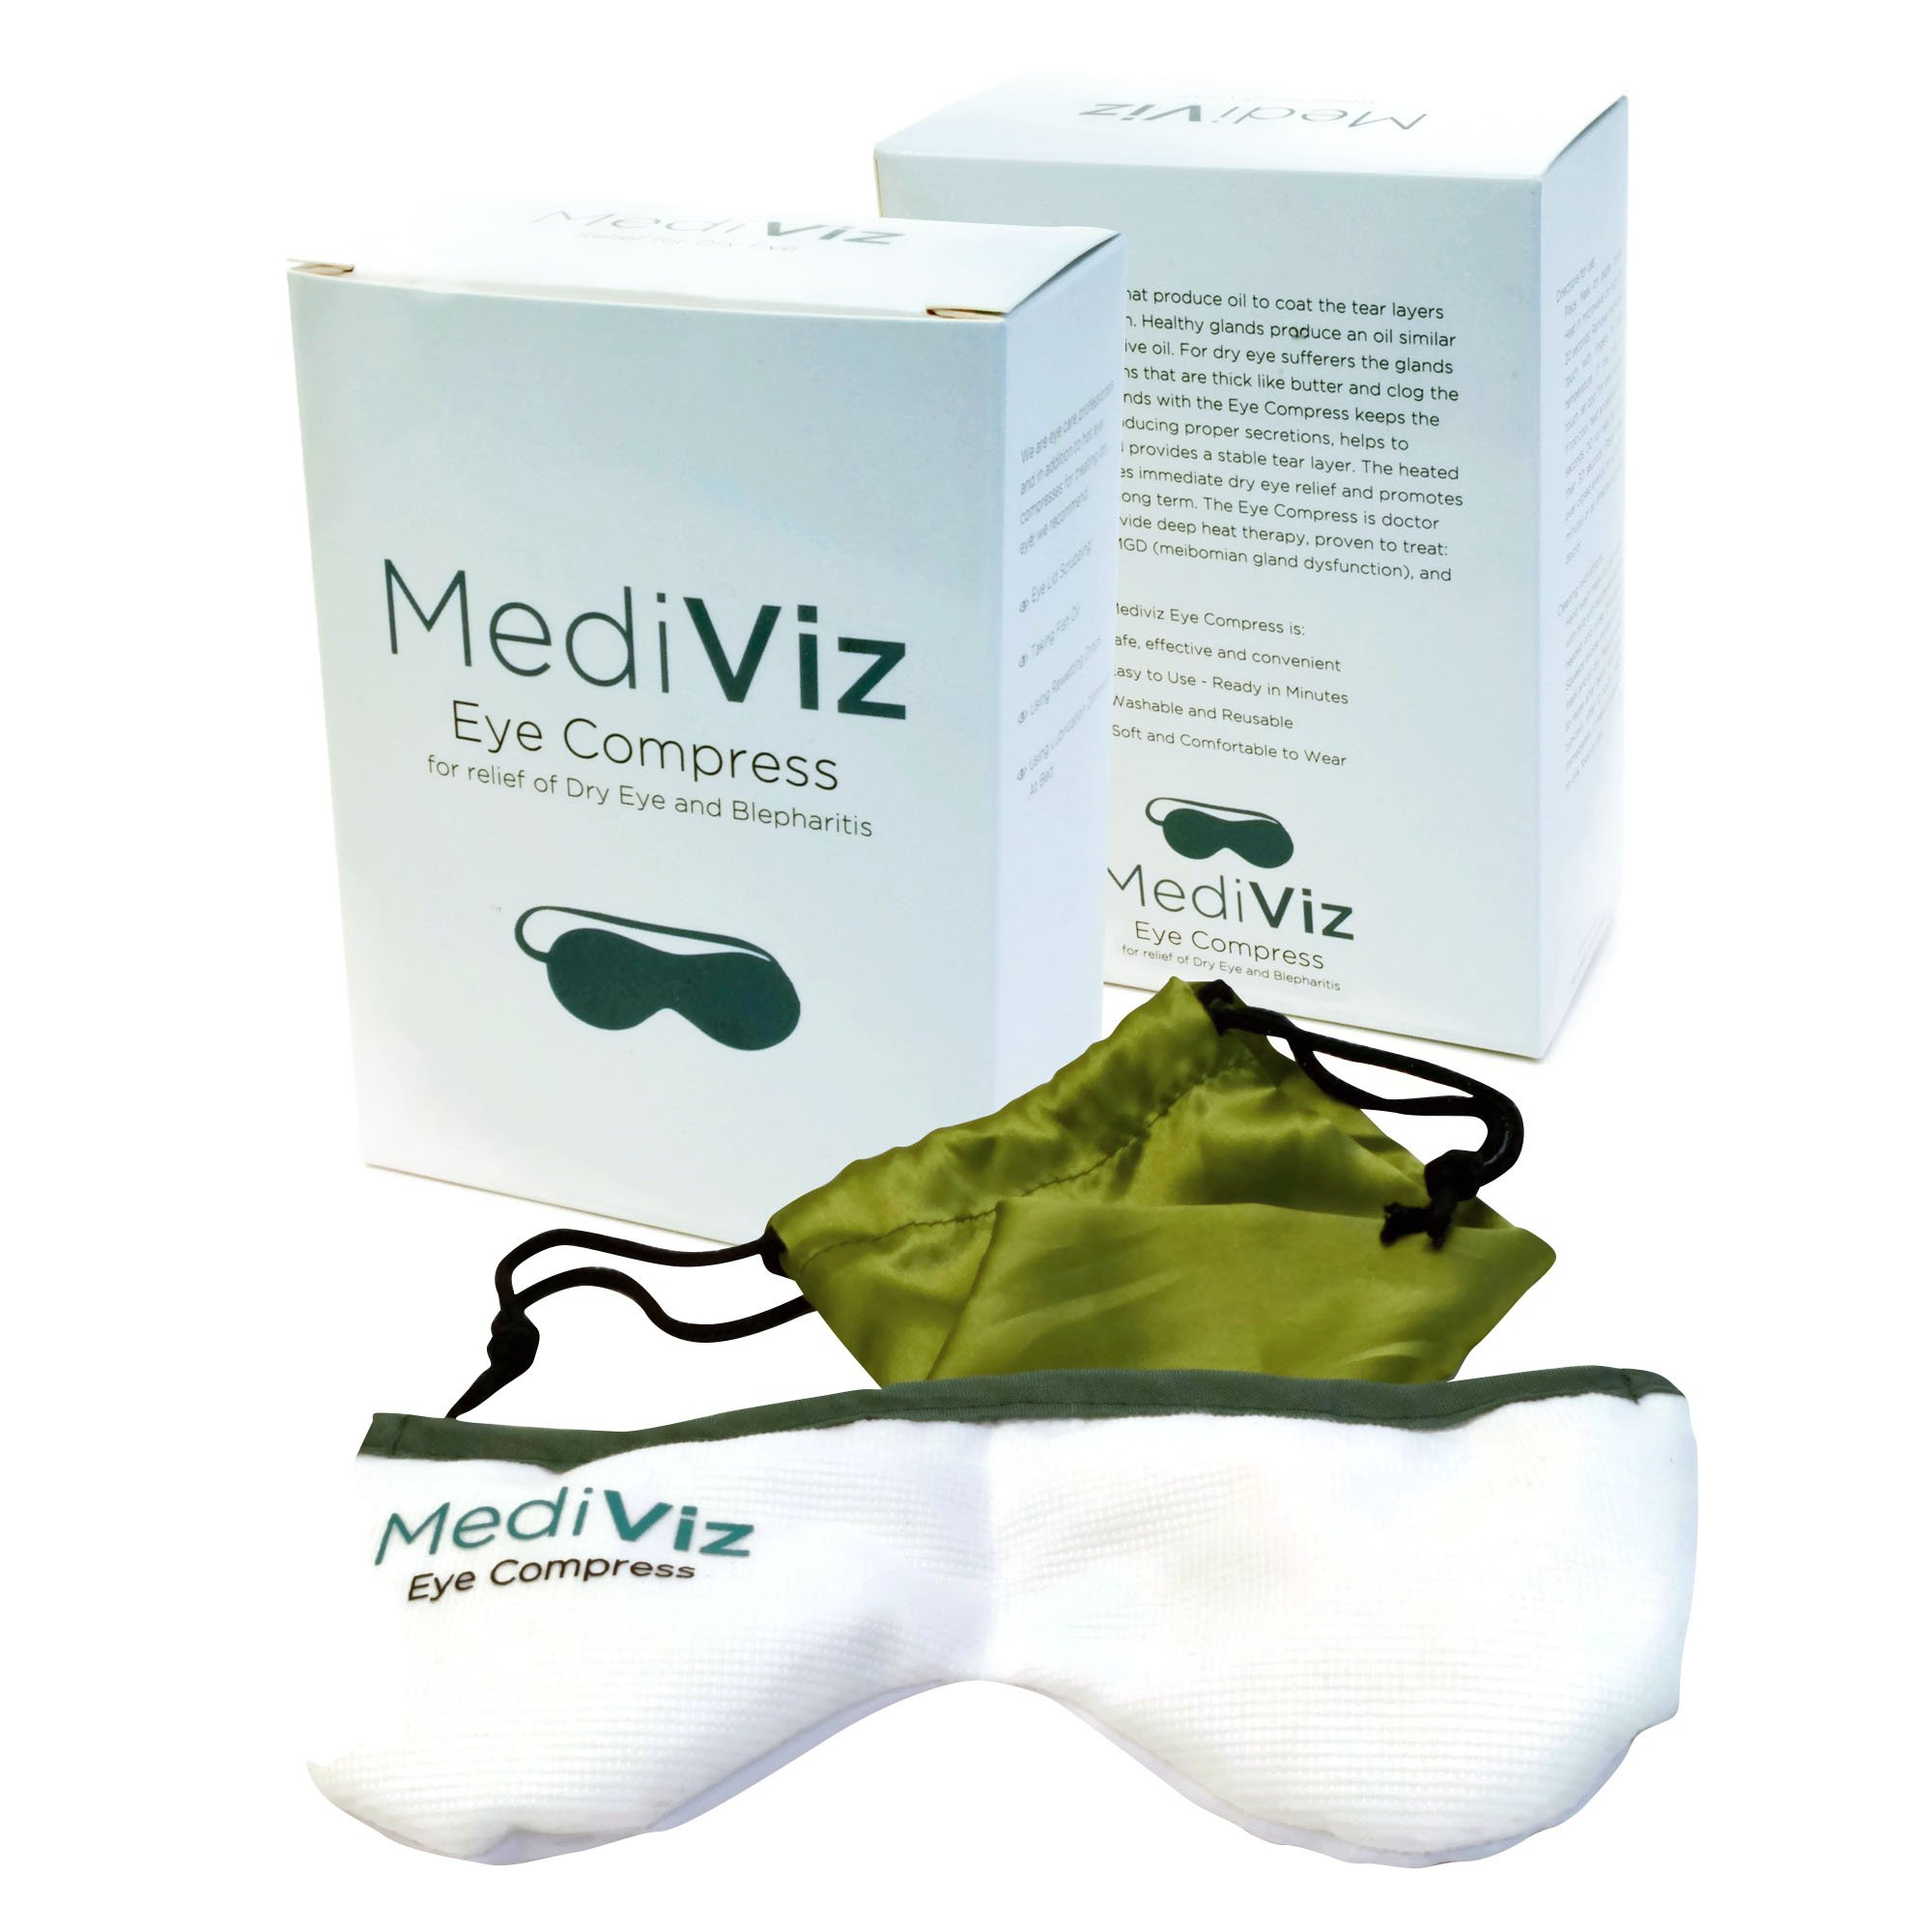 Mediviz Blepharitis Dry Eye Mask | Relieving Dry Eye Moist Heat Compress for Dry Eye, Styes, Meibomian Gland Dysfunction, Headaches, Sinuses, and Allergies